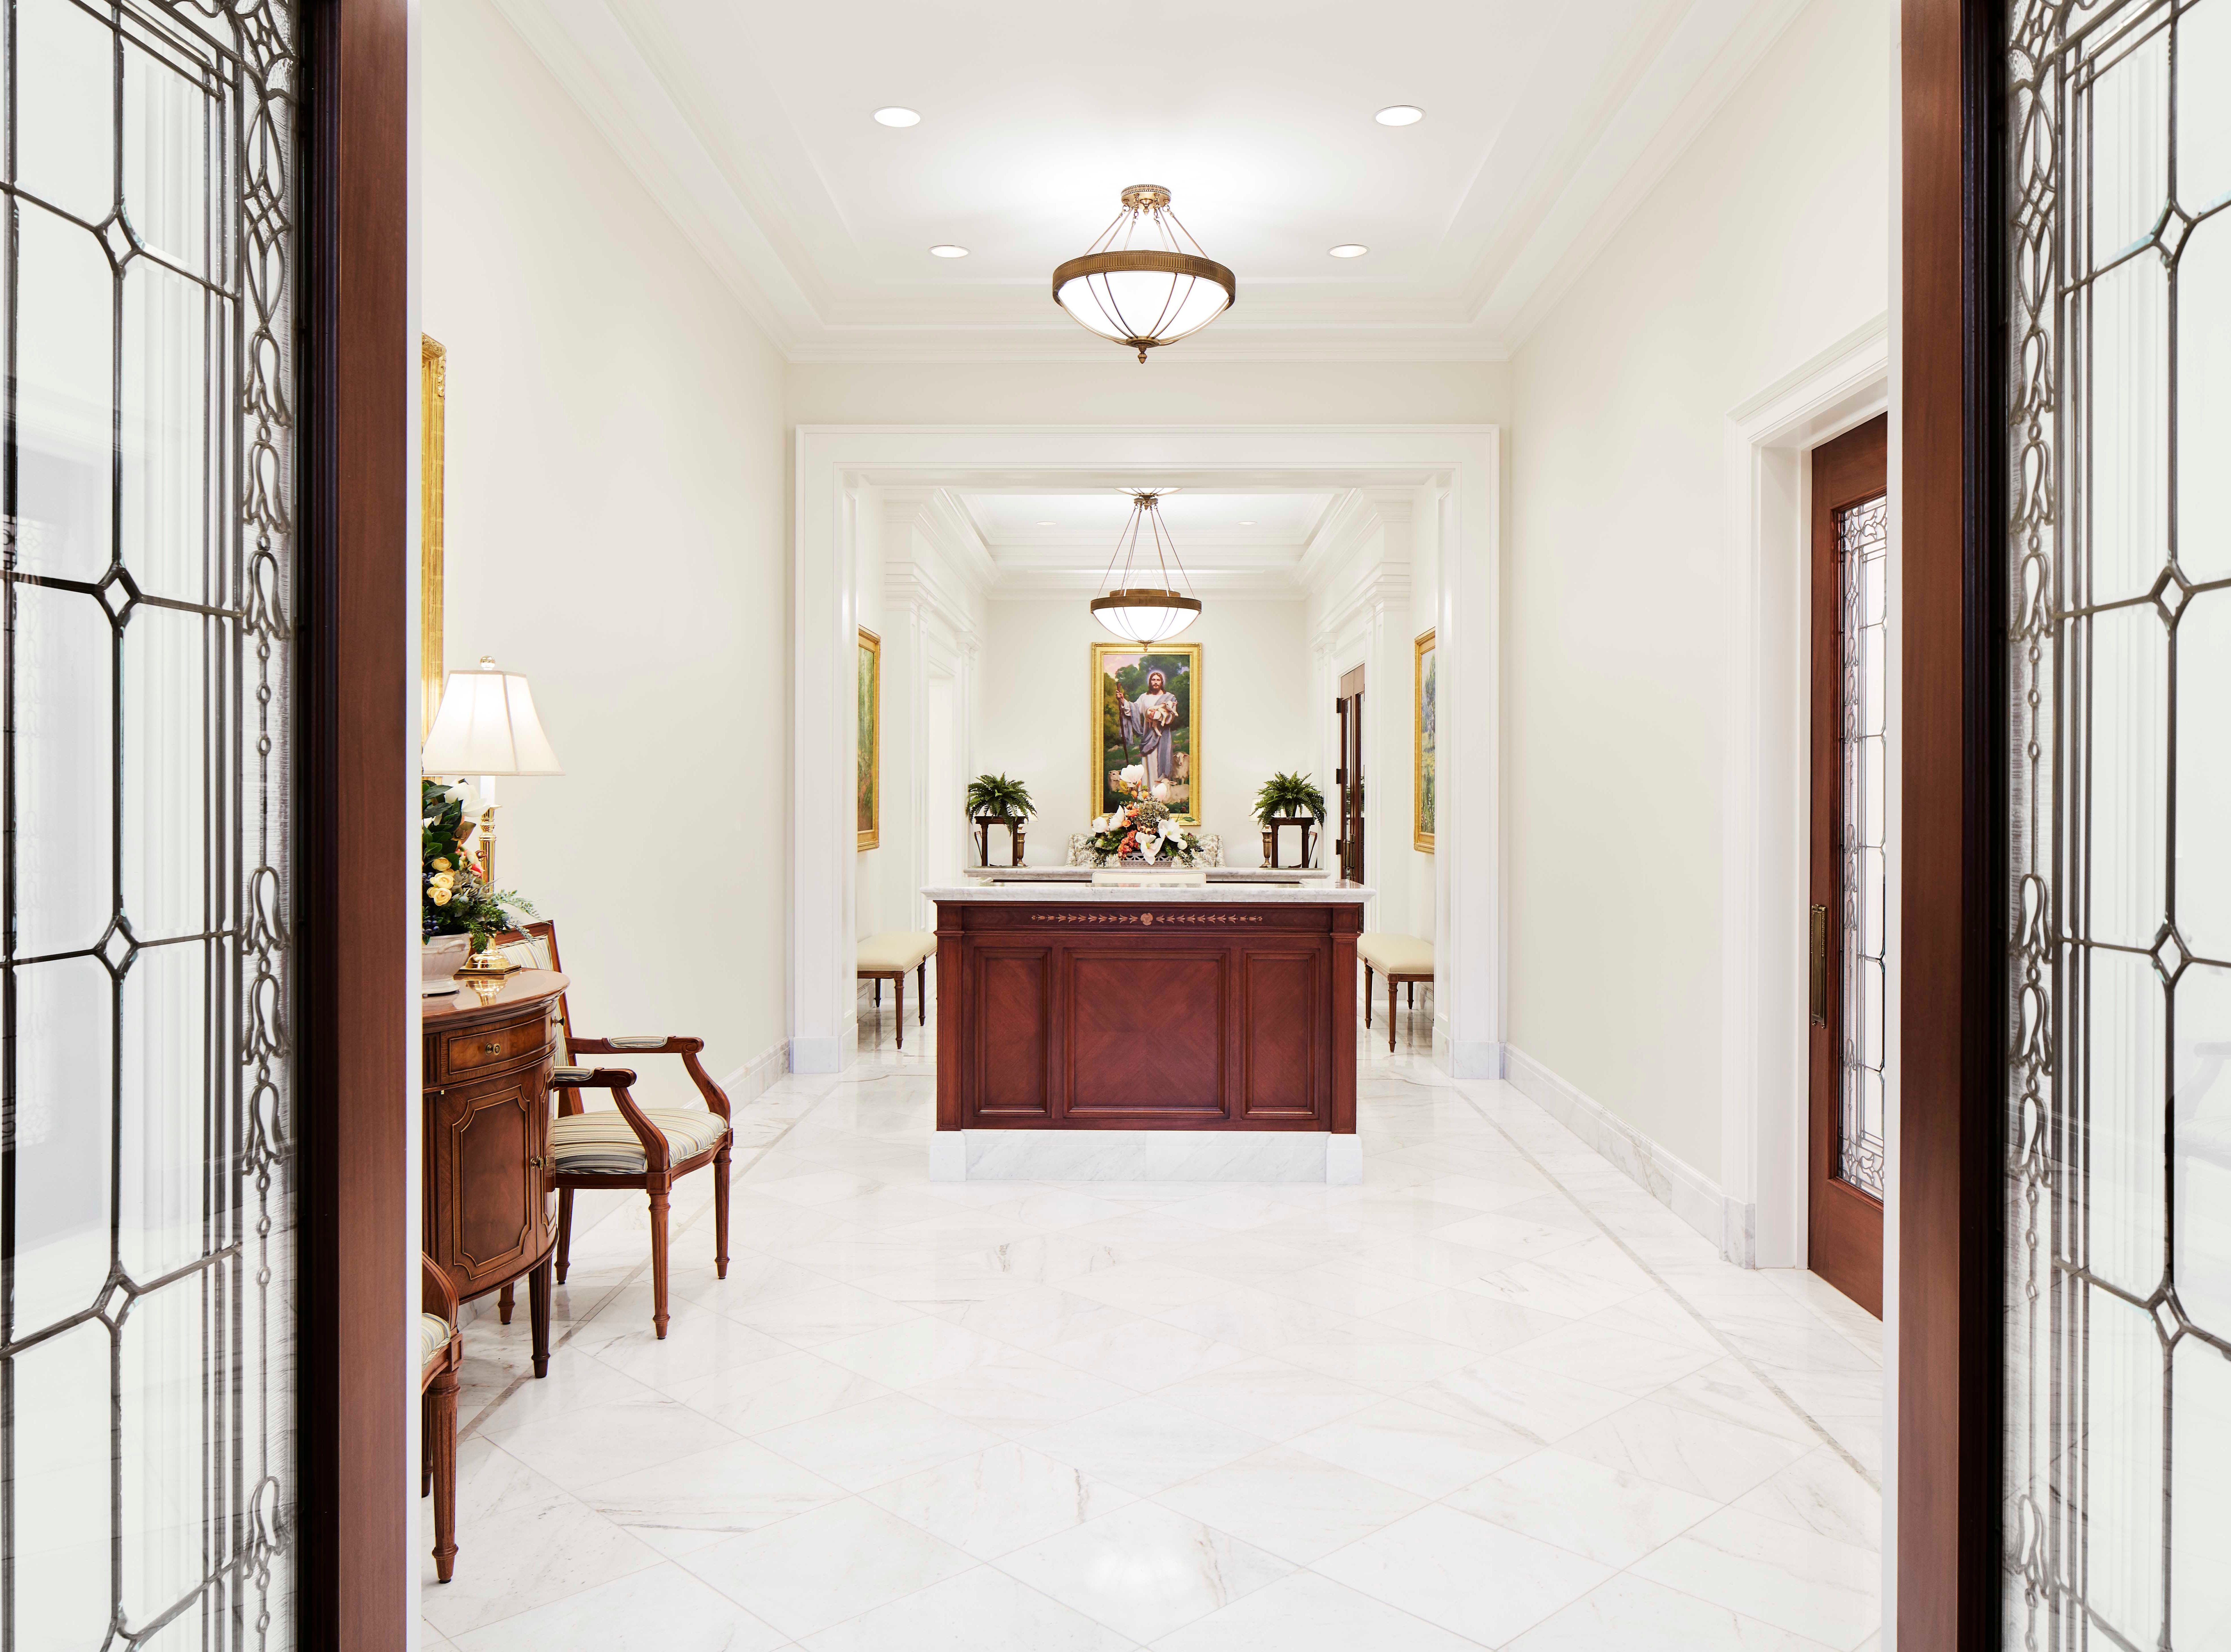 Walking through the front doors of the Memphis Tennessee Temple, people are greeted with a front desk and a painting of Jesus as a shepherd, holding a lamb.